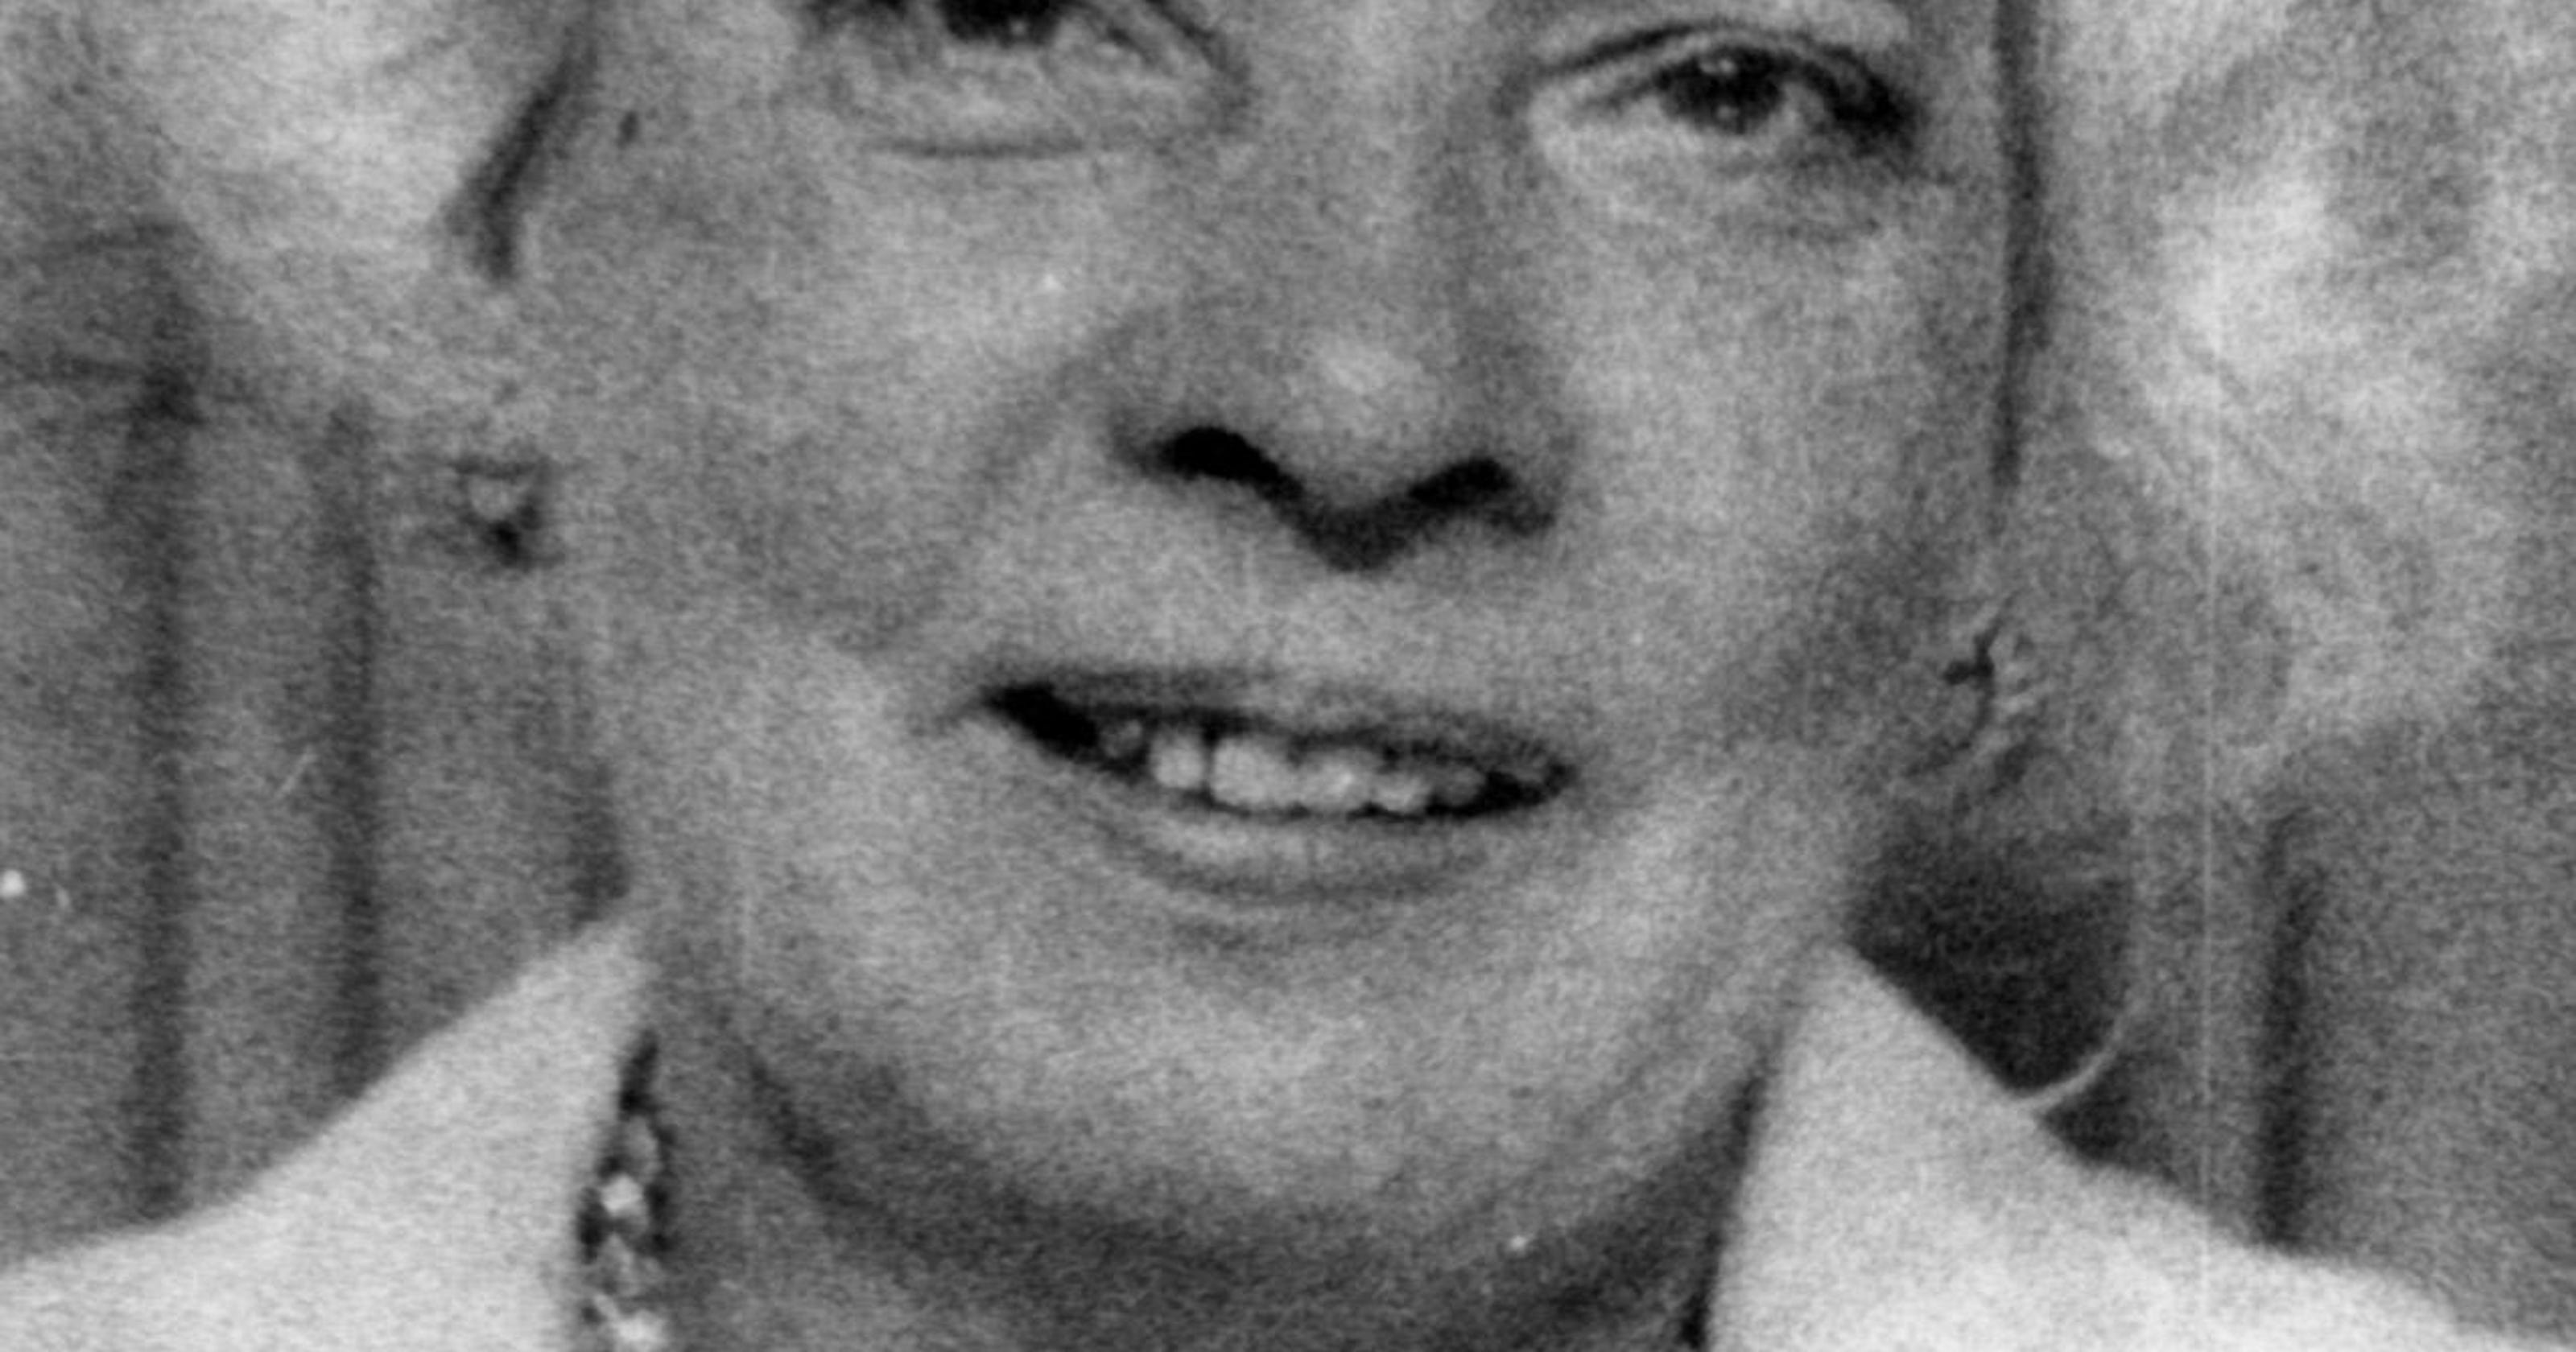 Murdered heiress, missing millions an enduring Indiana mystery